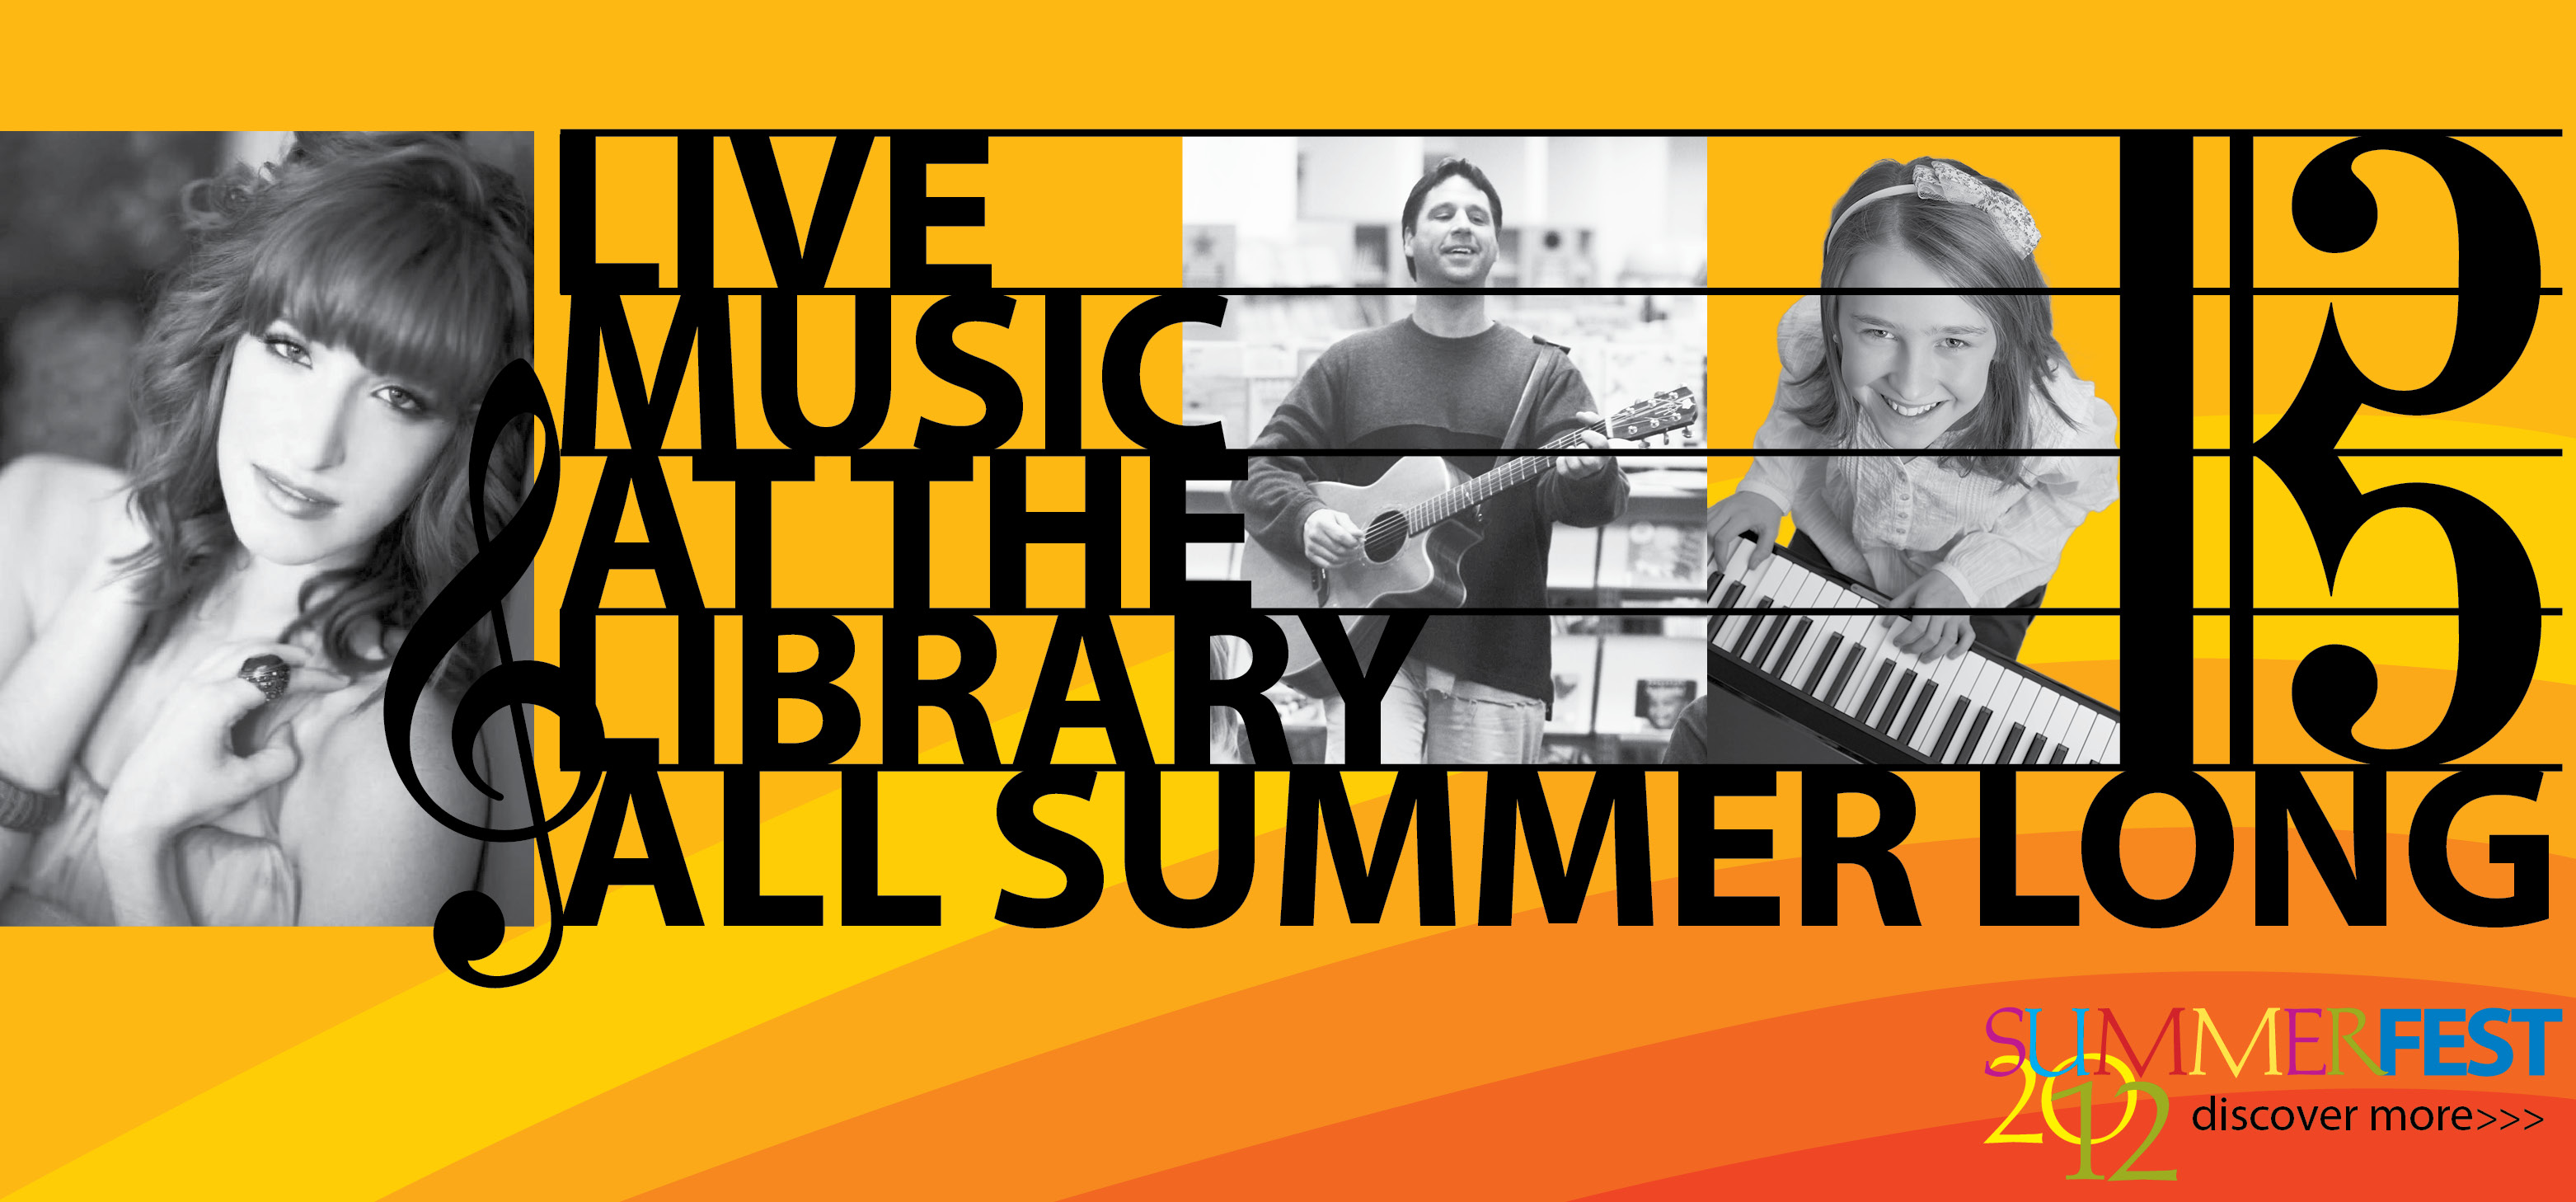 Live music at the library all summer long